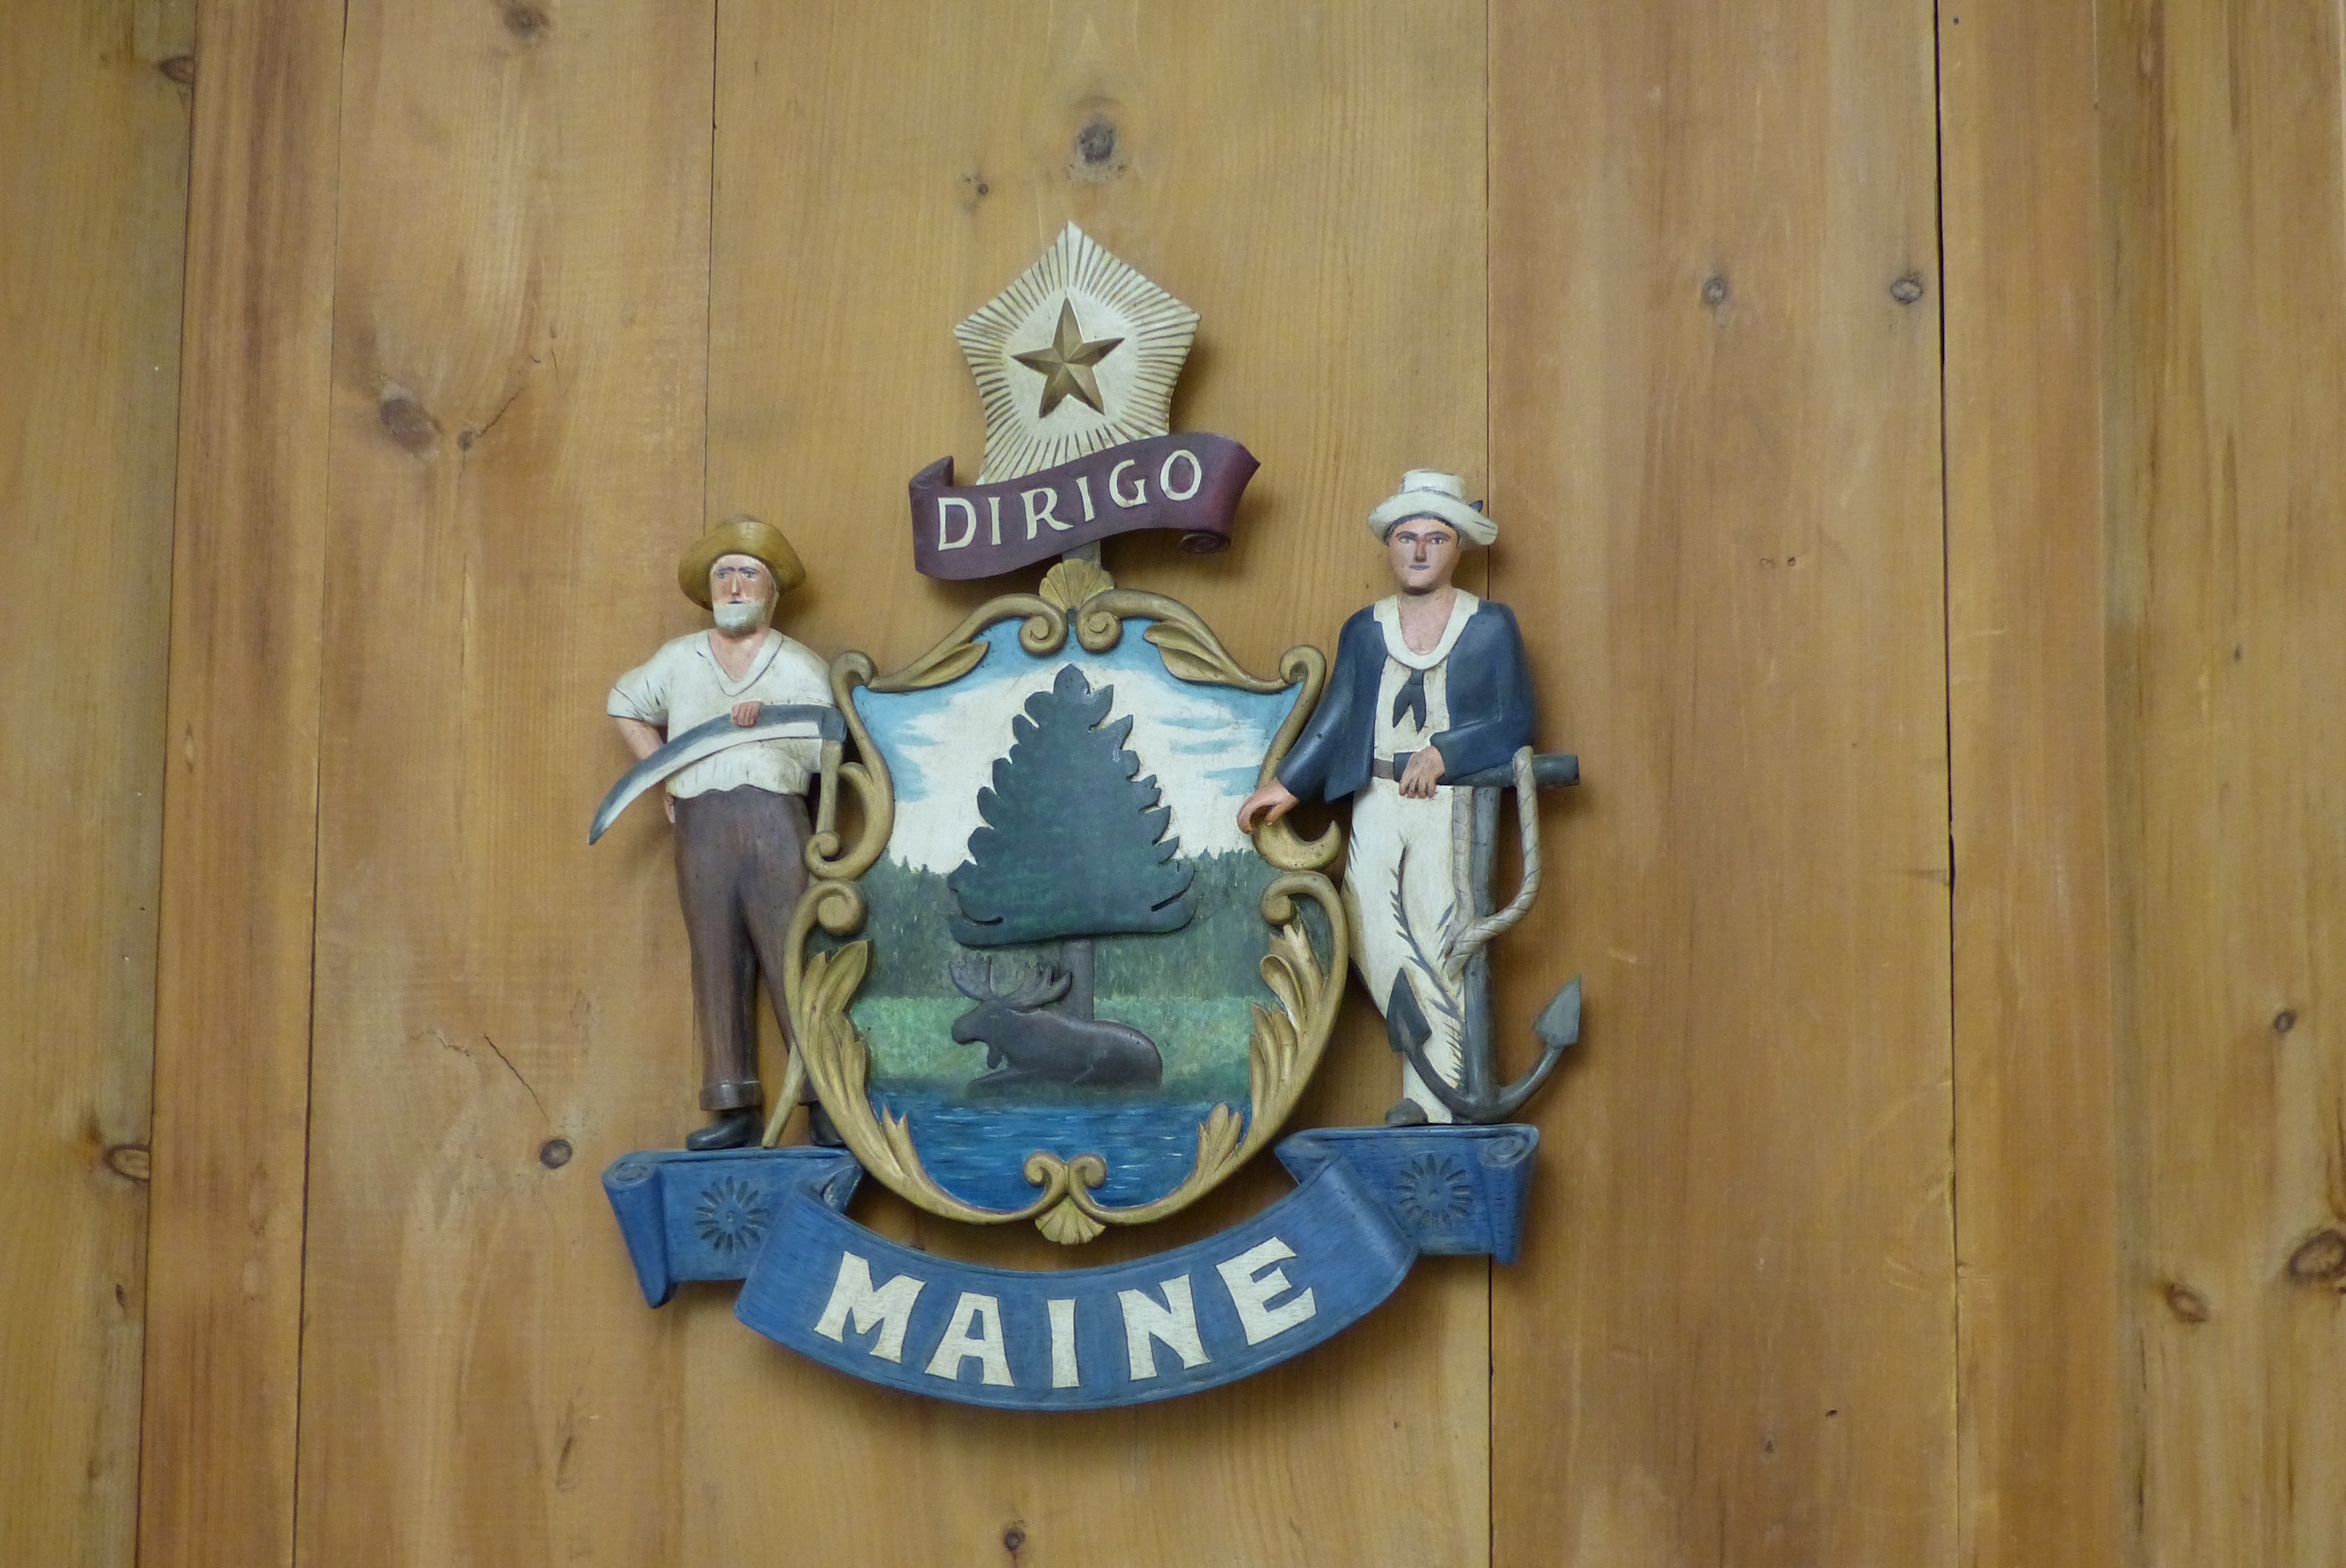 Coat of Arms of State of Maine, carving